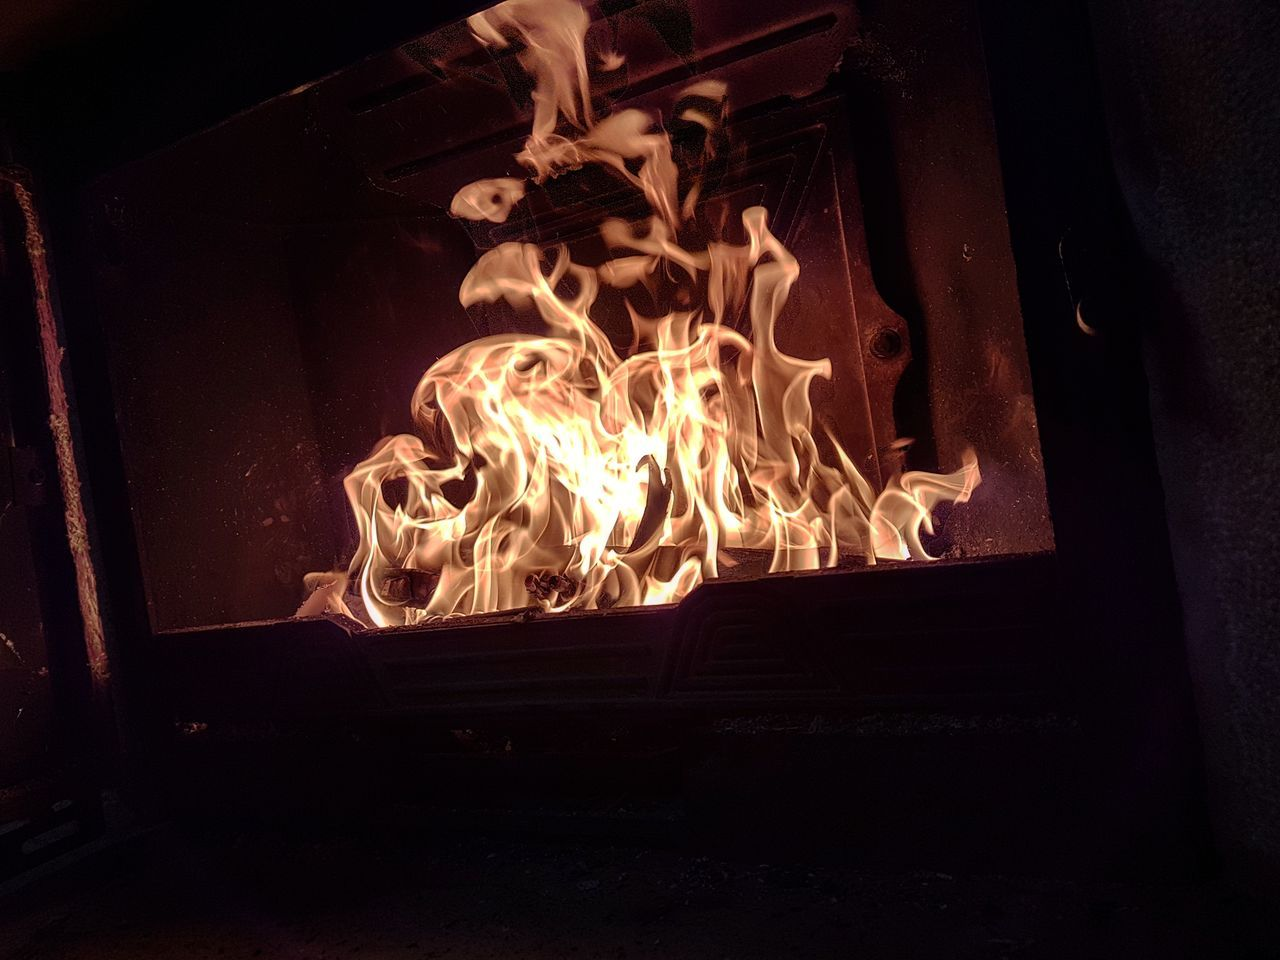 no people, flame, burning, night, indoors, home interior, wood - material, heat - temperature, close-up